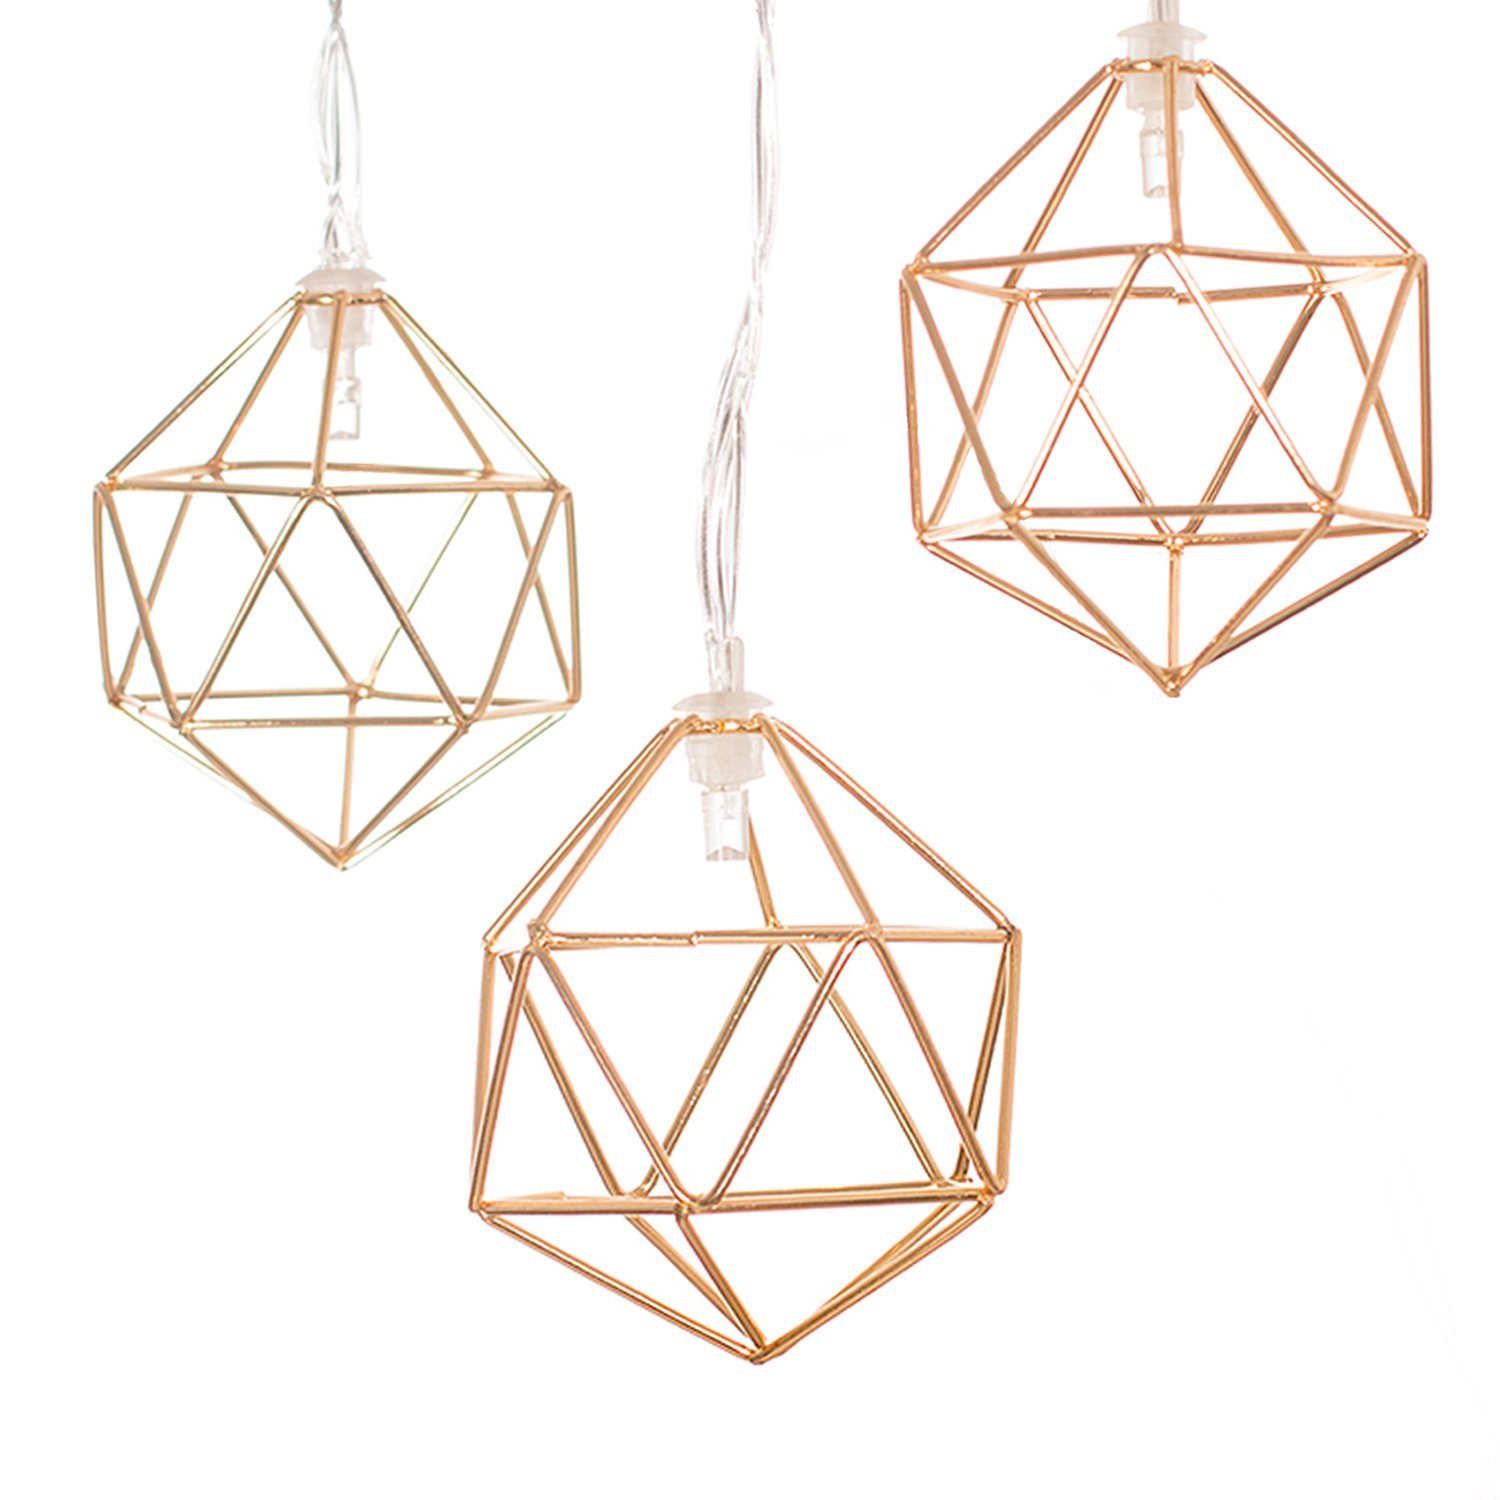 Three gold geometric string lights